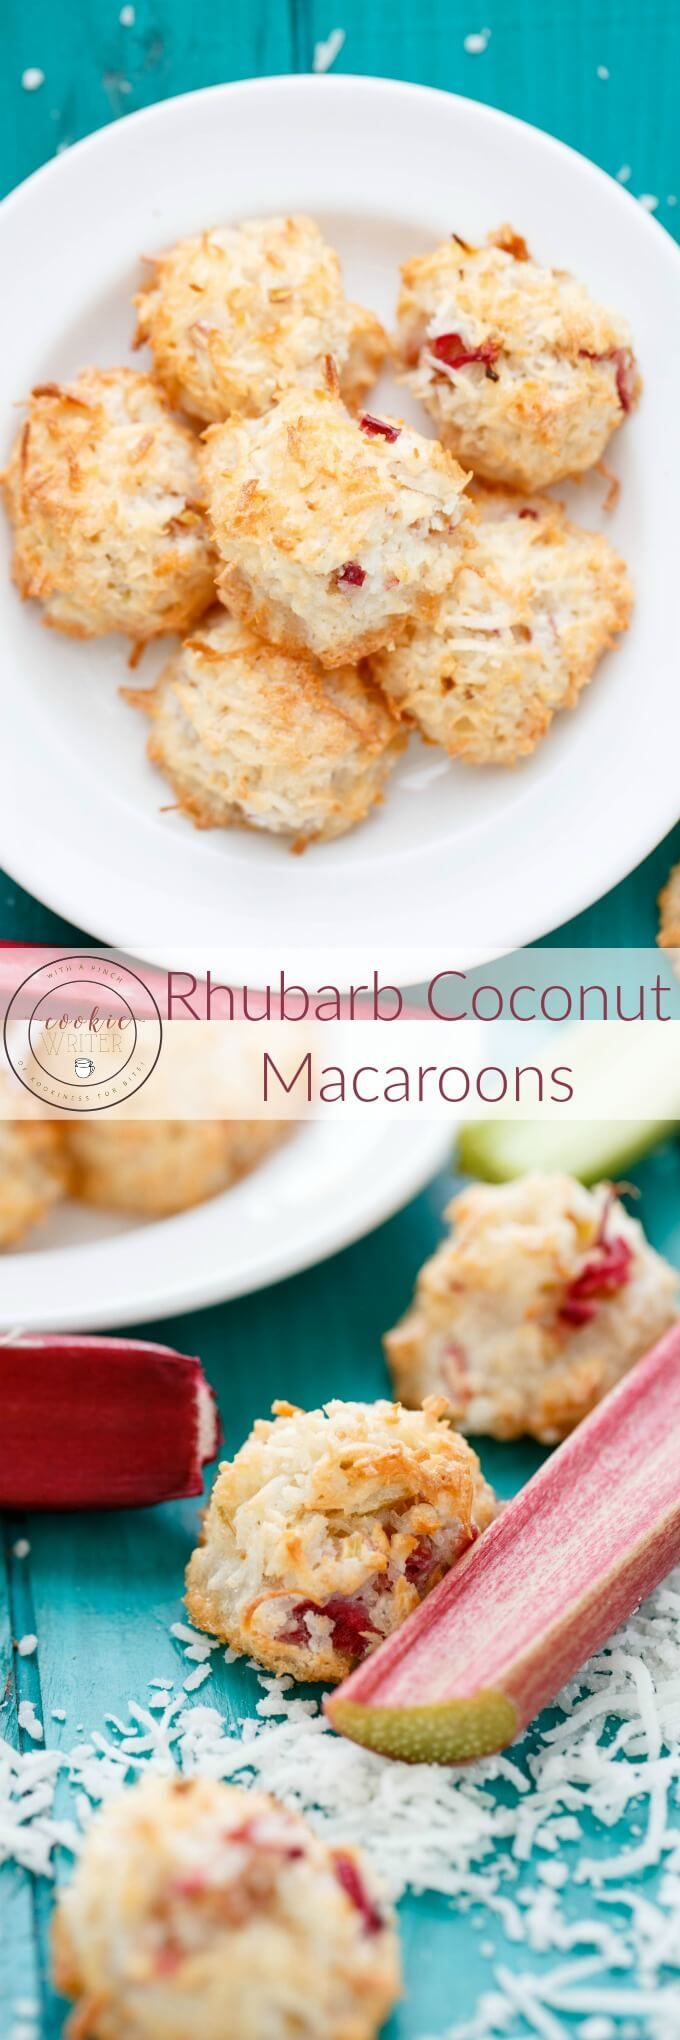 Rhubarb Coconut Macaroons | http://thecookiewriter.com | @thecookiewriter | Easy 3 ingredient recipe that is gluten free and low carb, the chewy texture of these healthy cookies get a bite from fresh rhubarb!